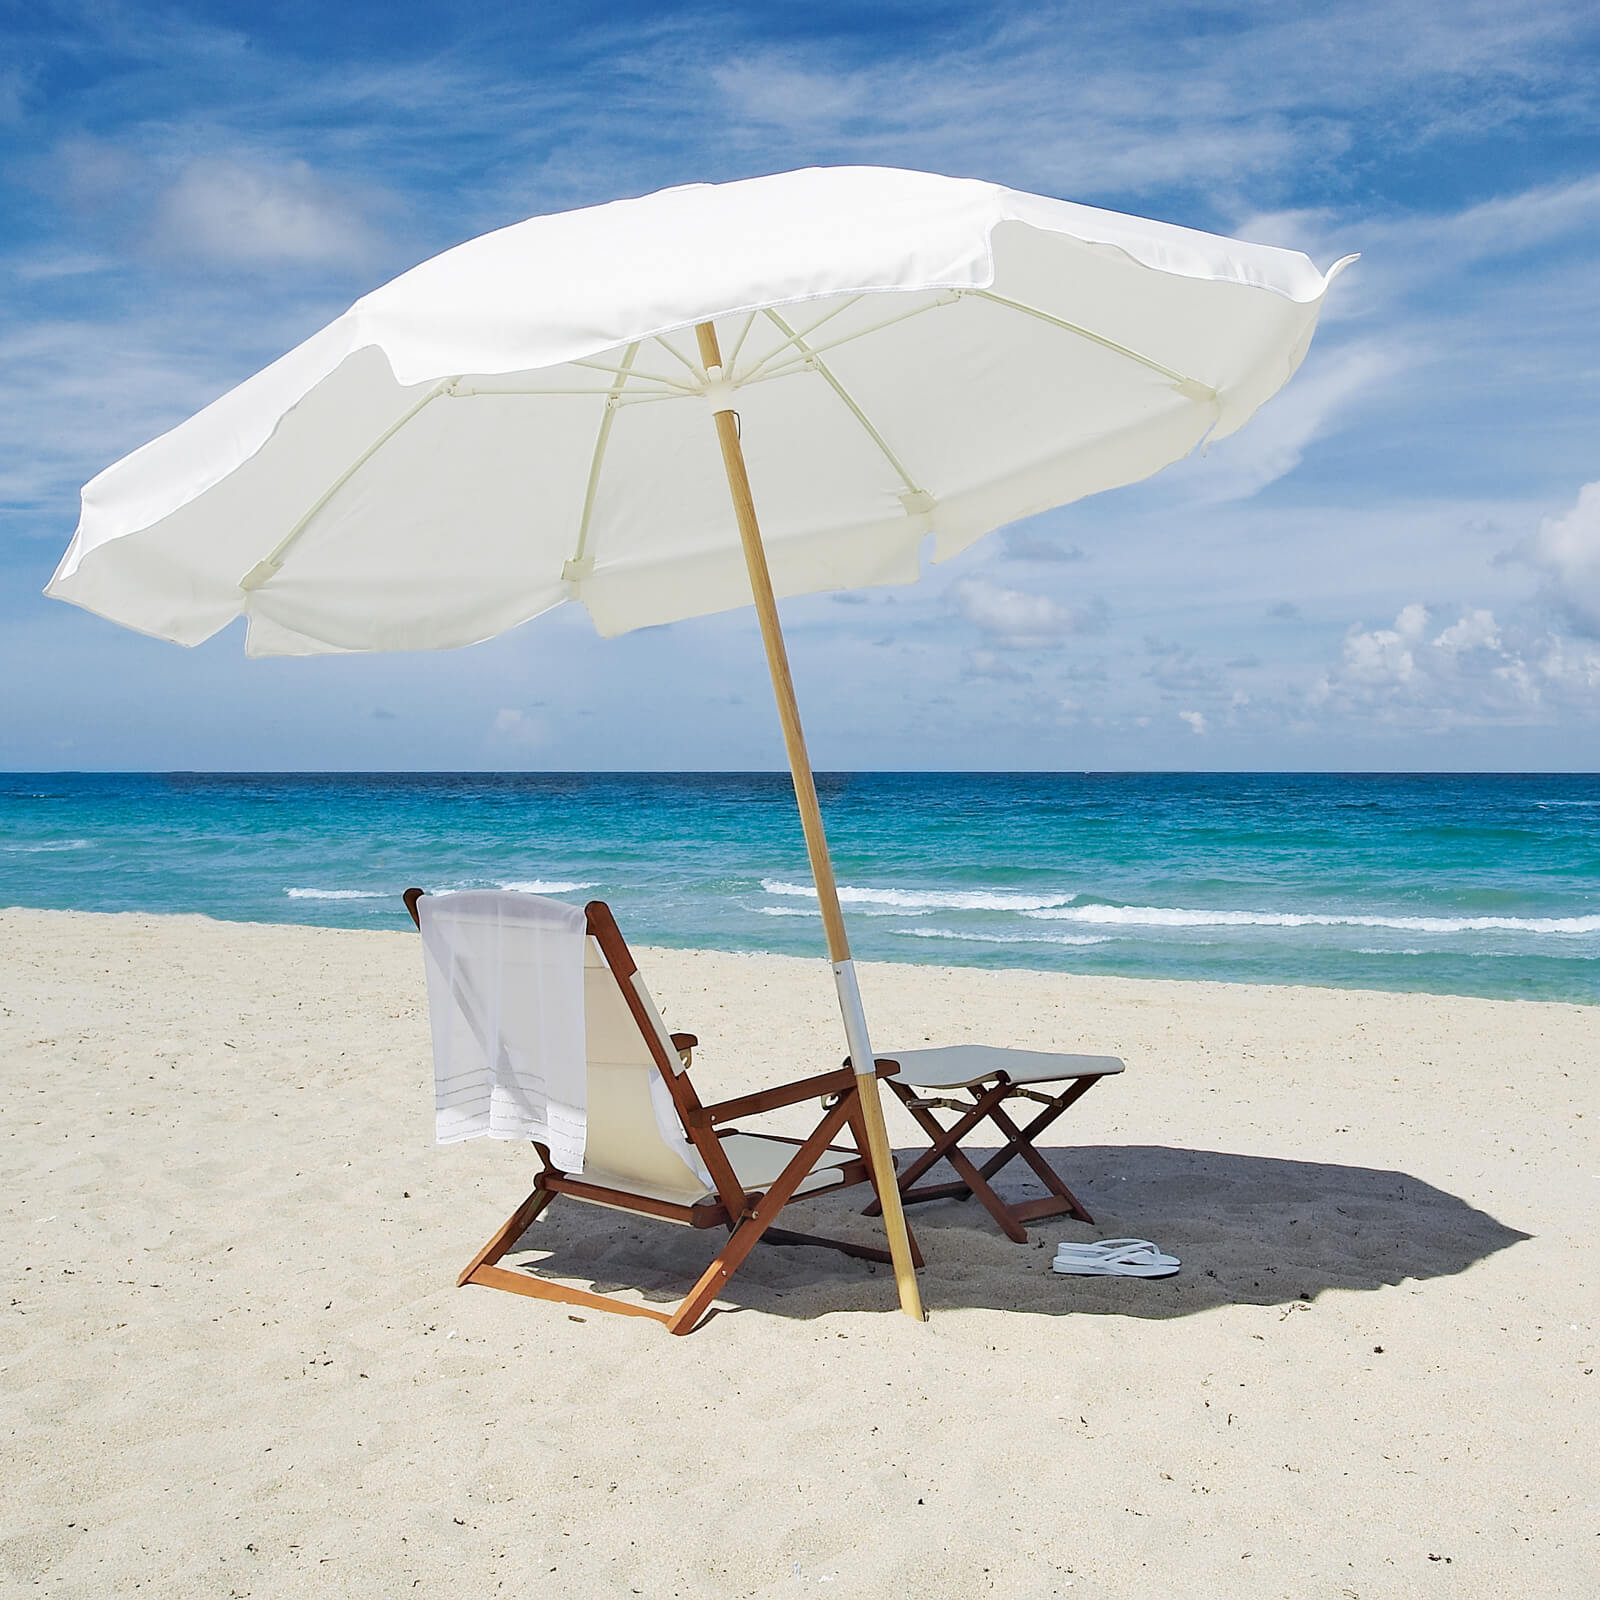 Beach house view of lounge chair and white umbrella.